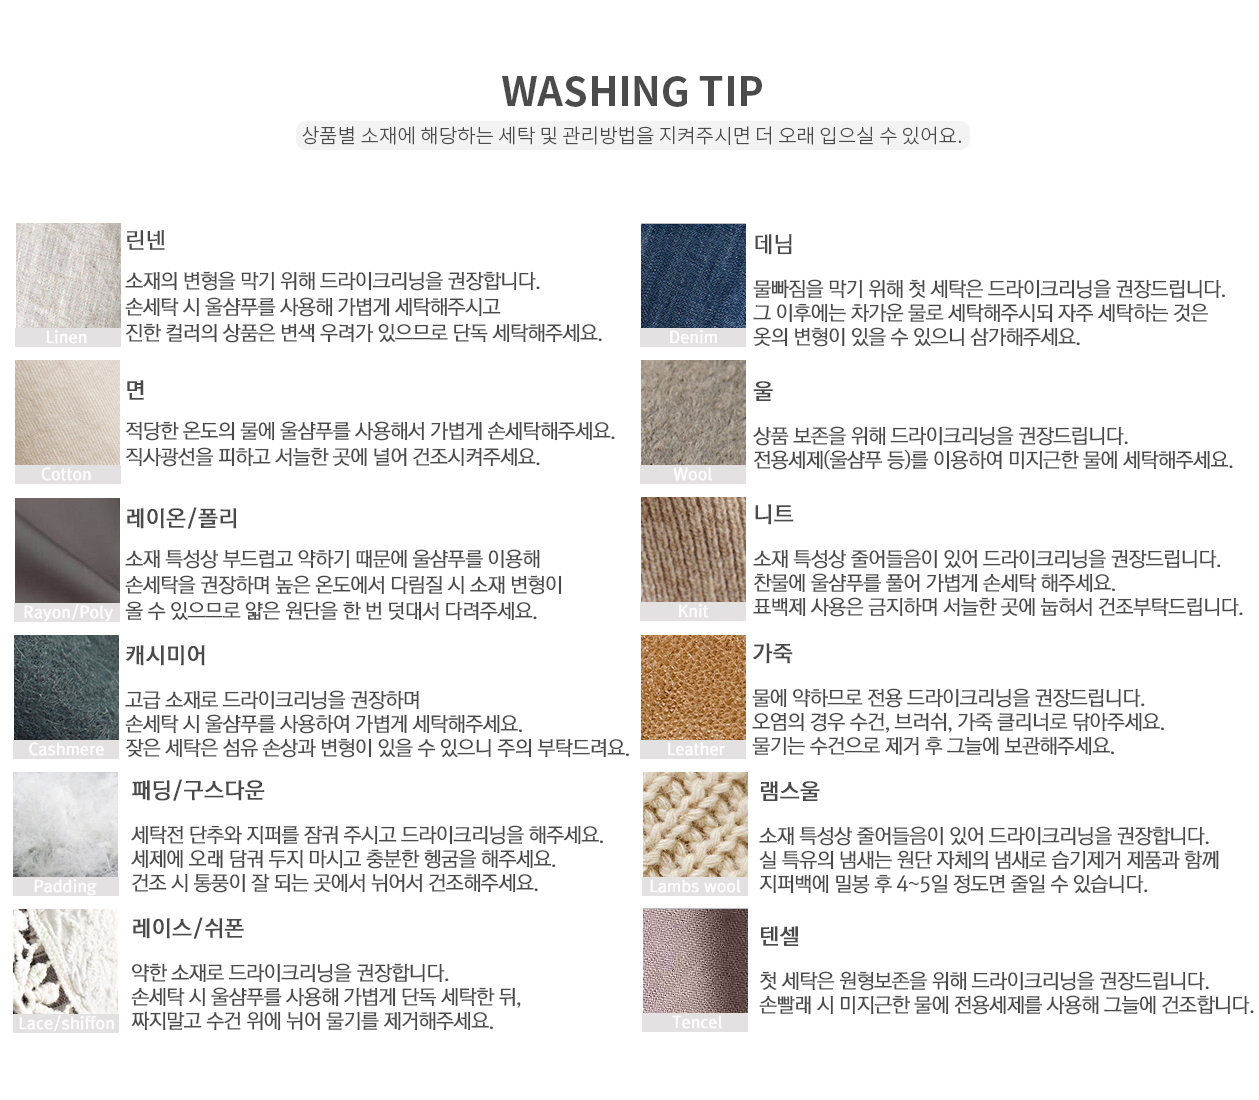 washing tip